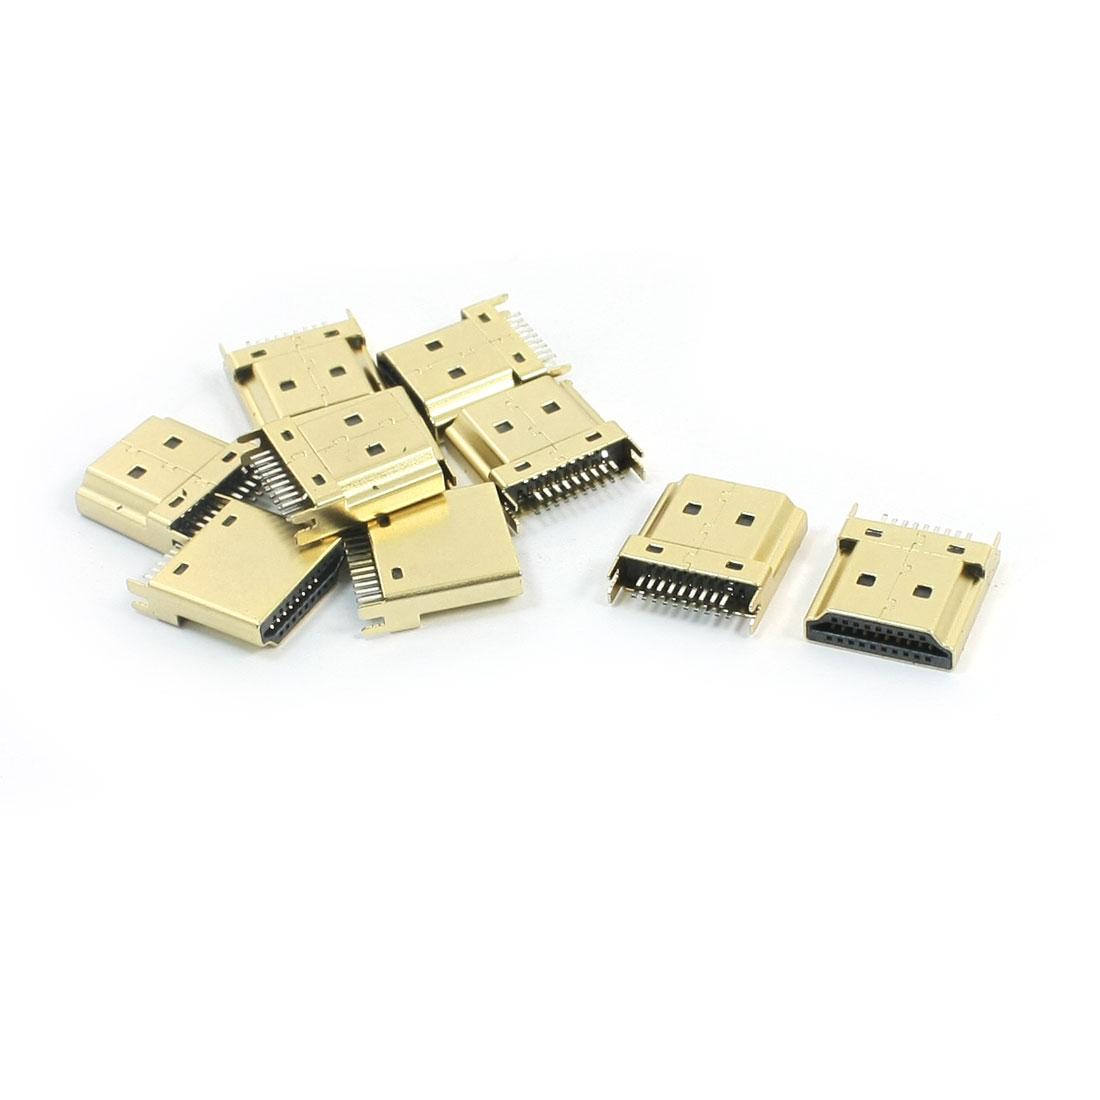 10PCS 1.0mm Female HDMI Jack Socket 19Pins 4 Legs DIP 180 Degree